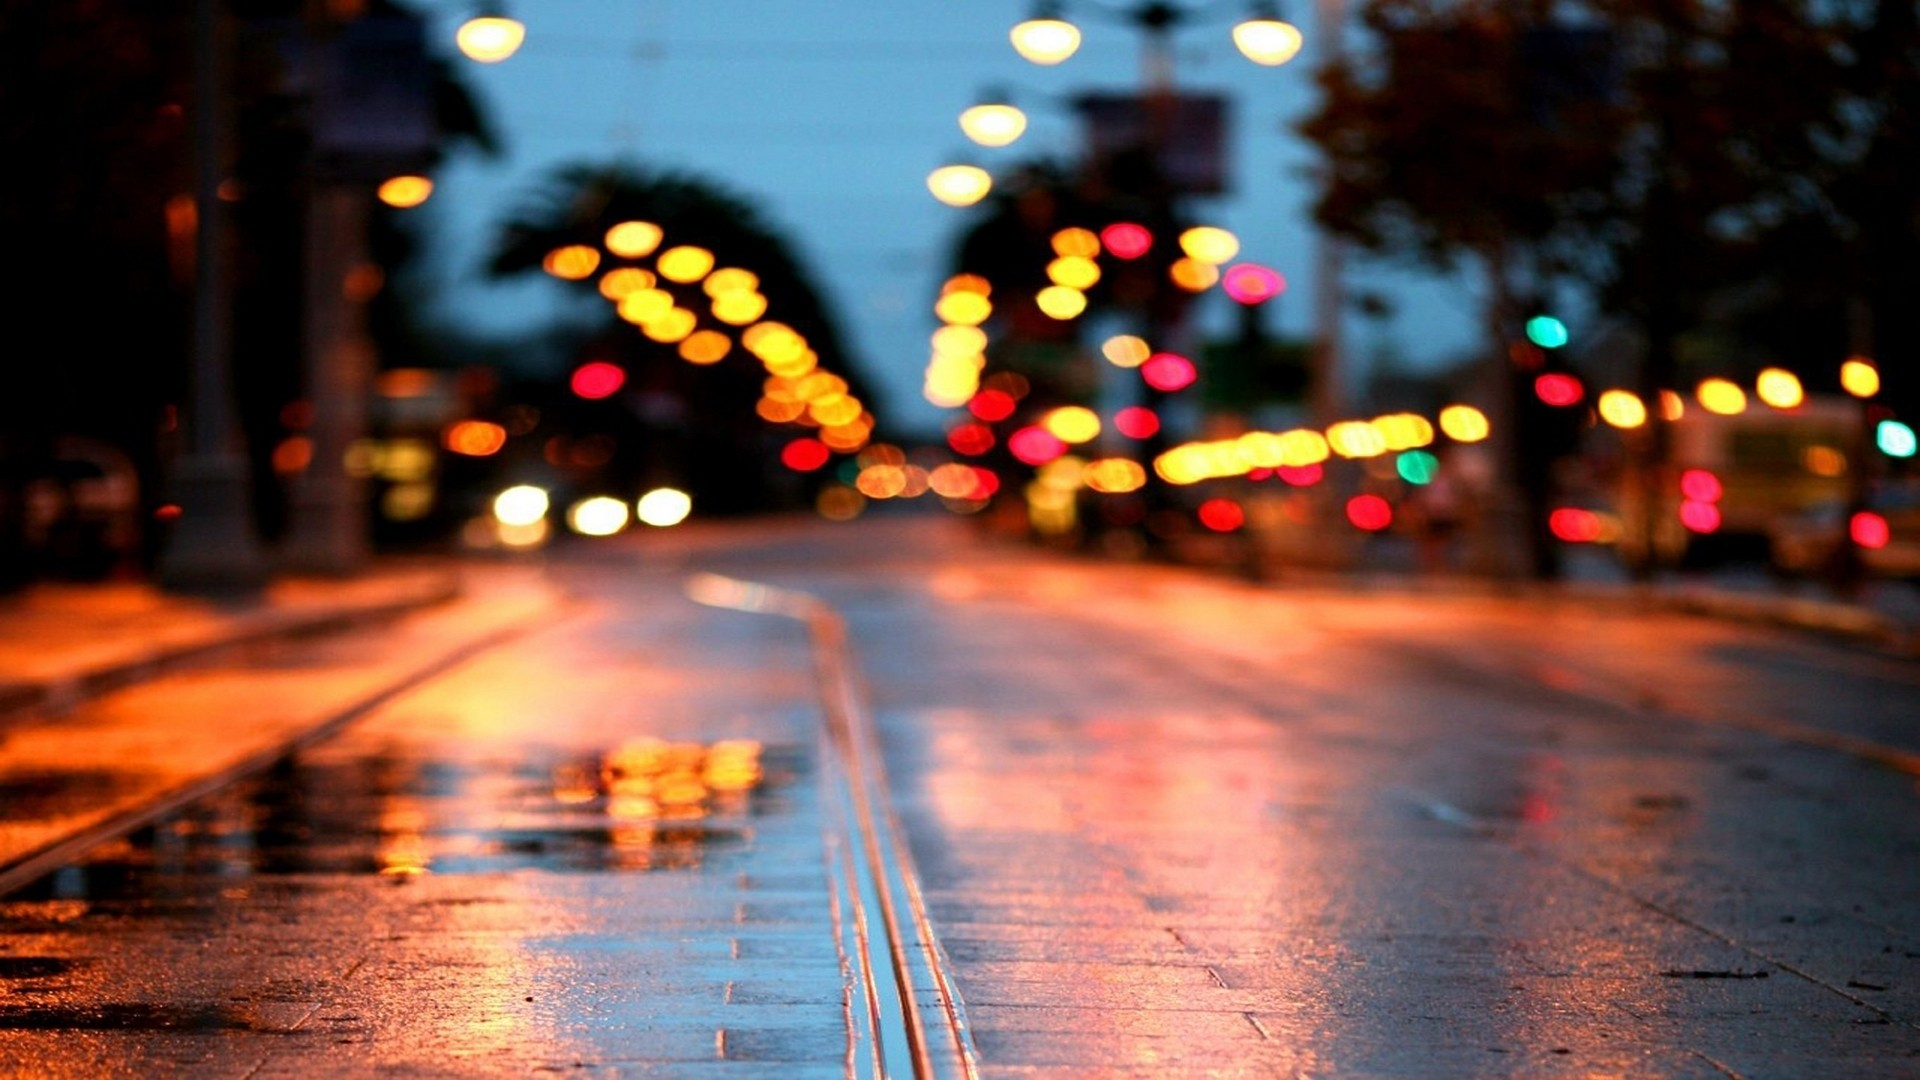 cityscapes, photography, street, colors, out of focus :: Wallpapers